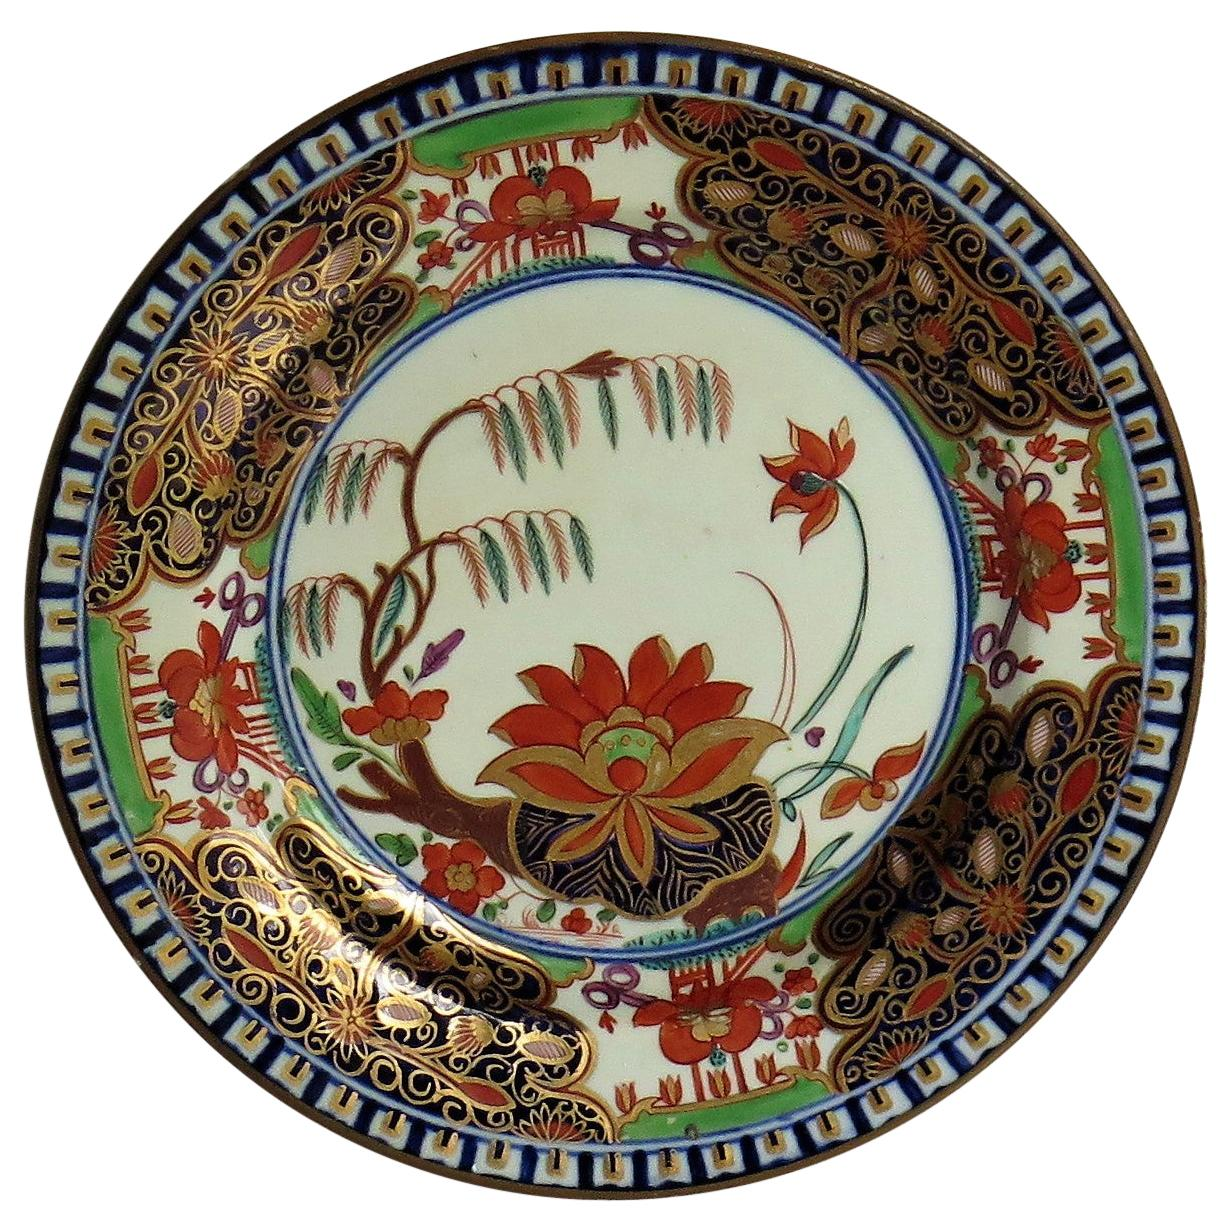 Early Staffordshire Porcelain Plate Finely Hand Painted, English, circa 1820